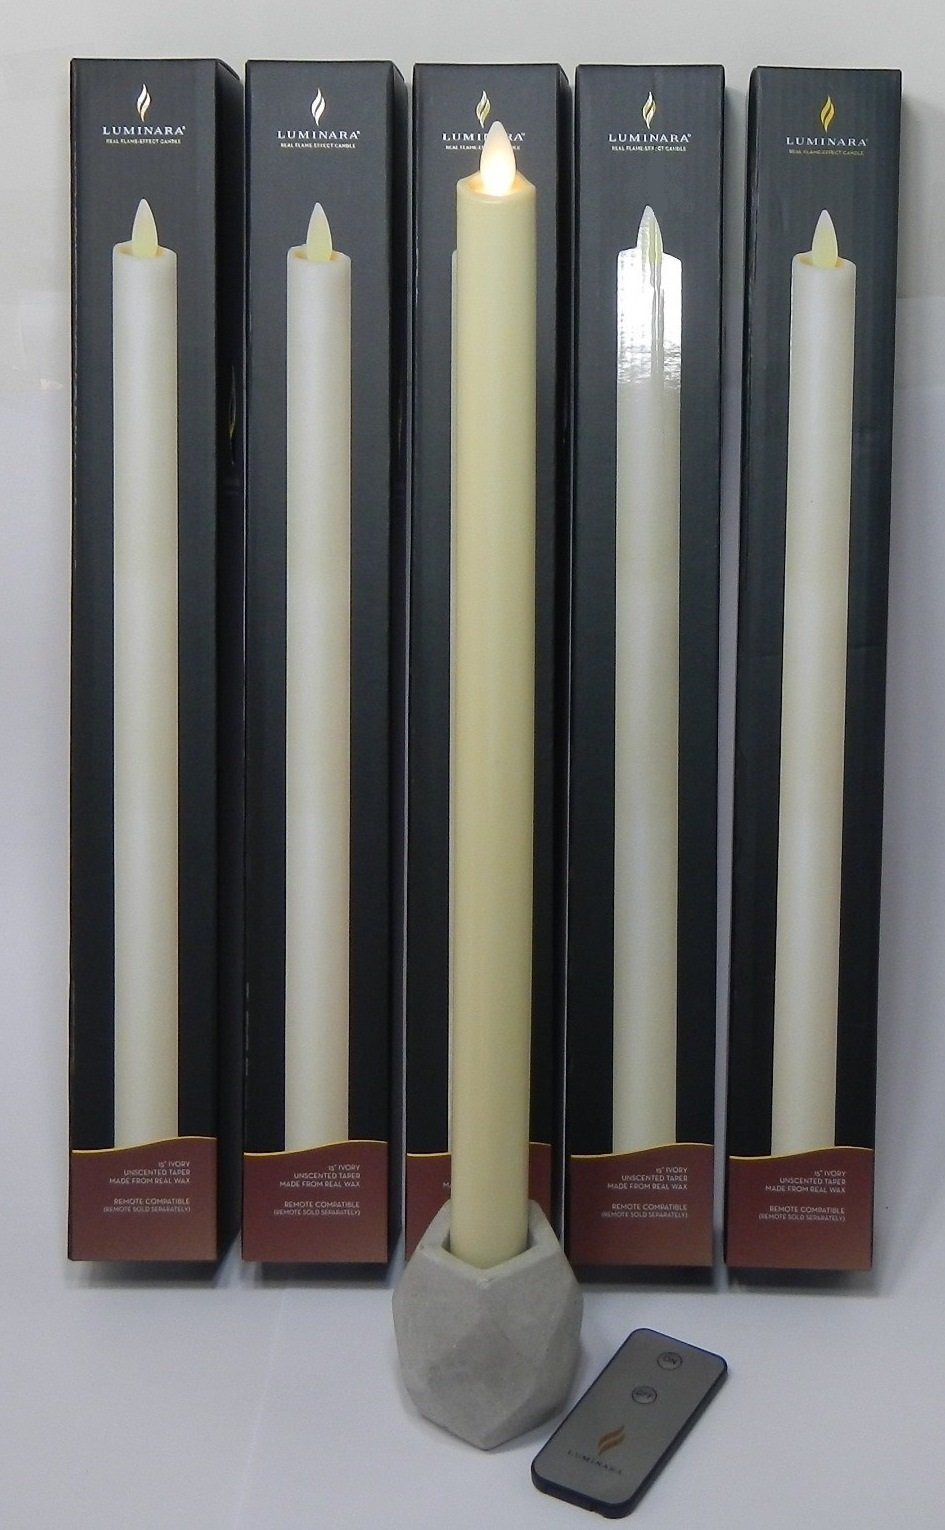 Luminara Flameless Candle IVORY TAPER 15'' In. Tall Real Wax | 5 PIECE SET with BONUS REMOTE CONTROL | Real Flame Effect |